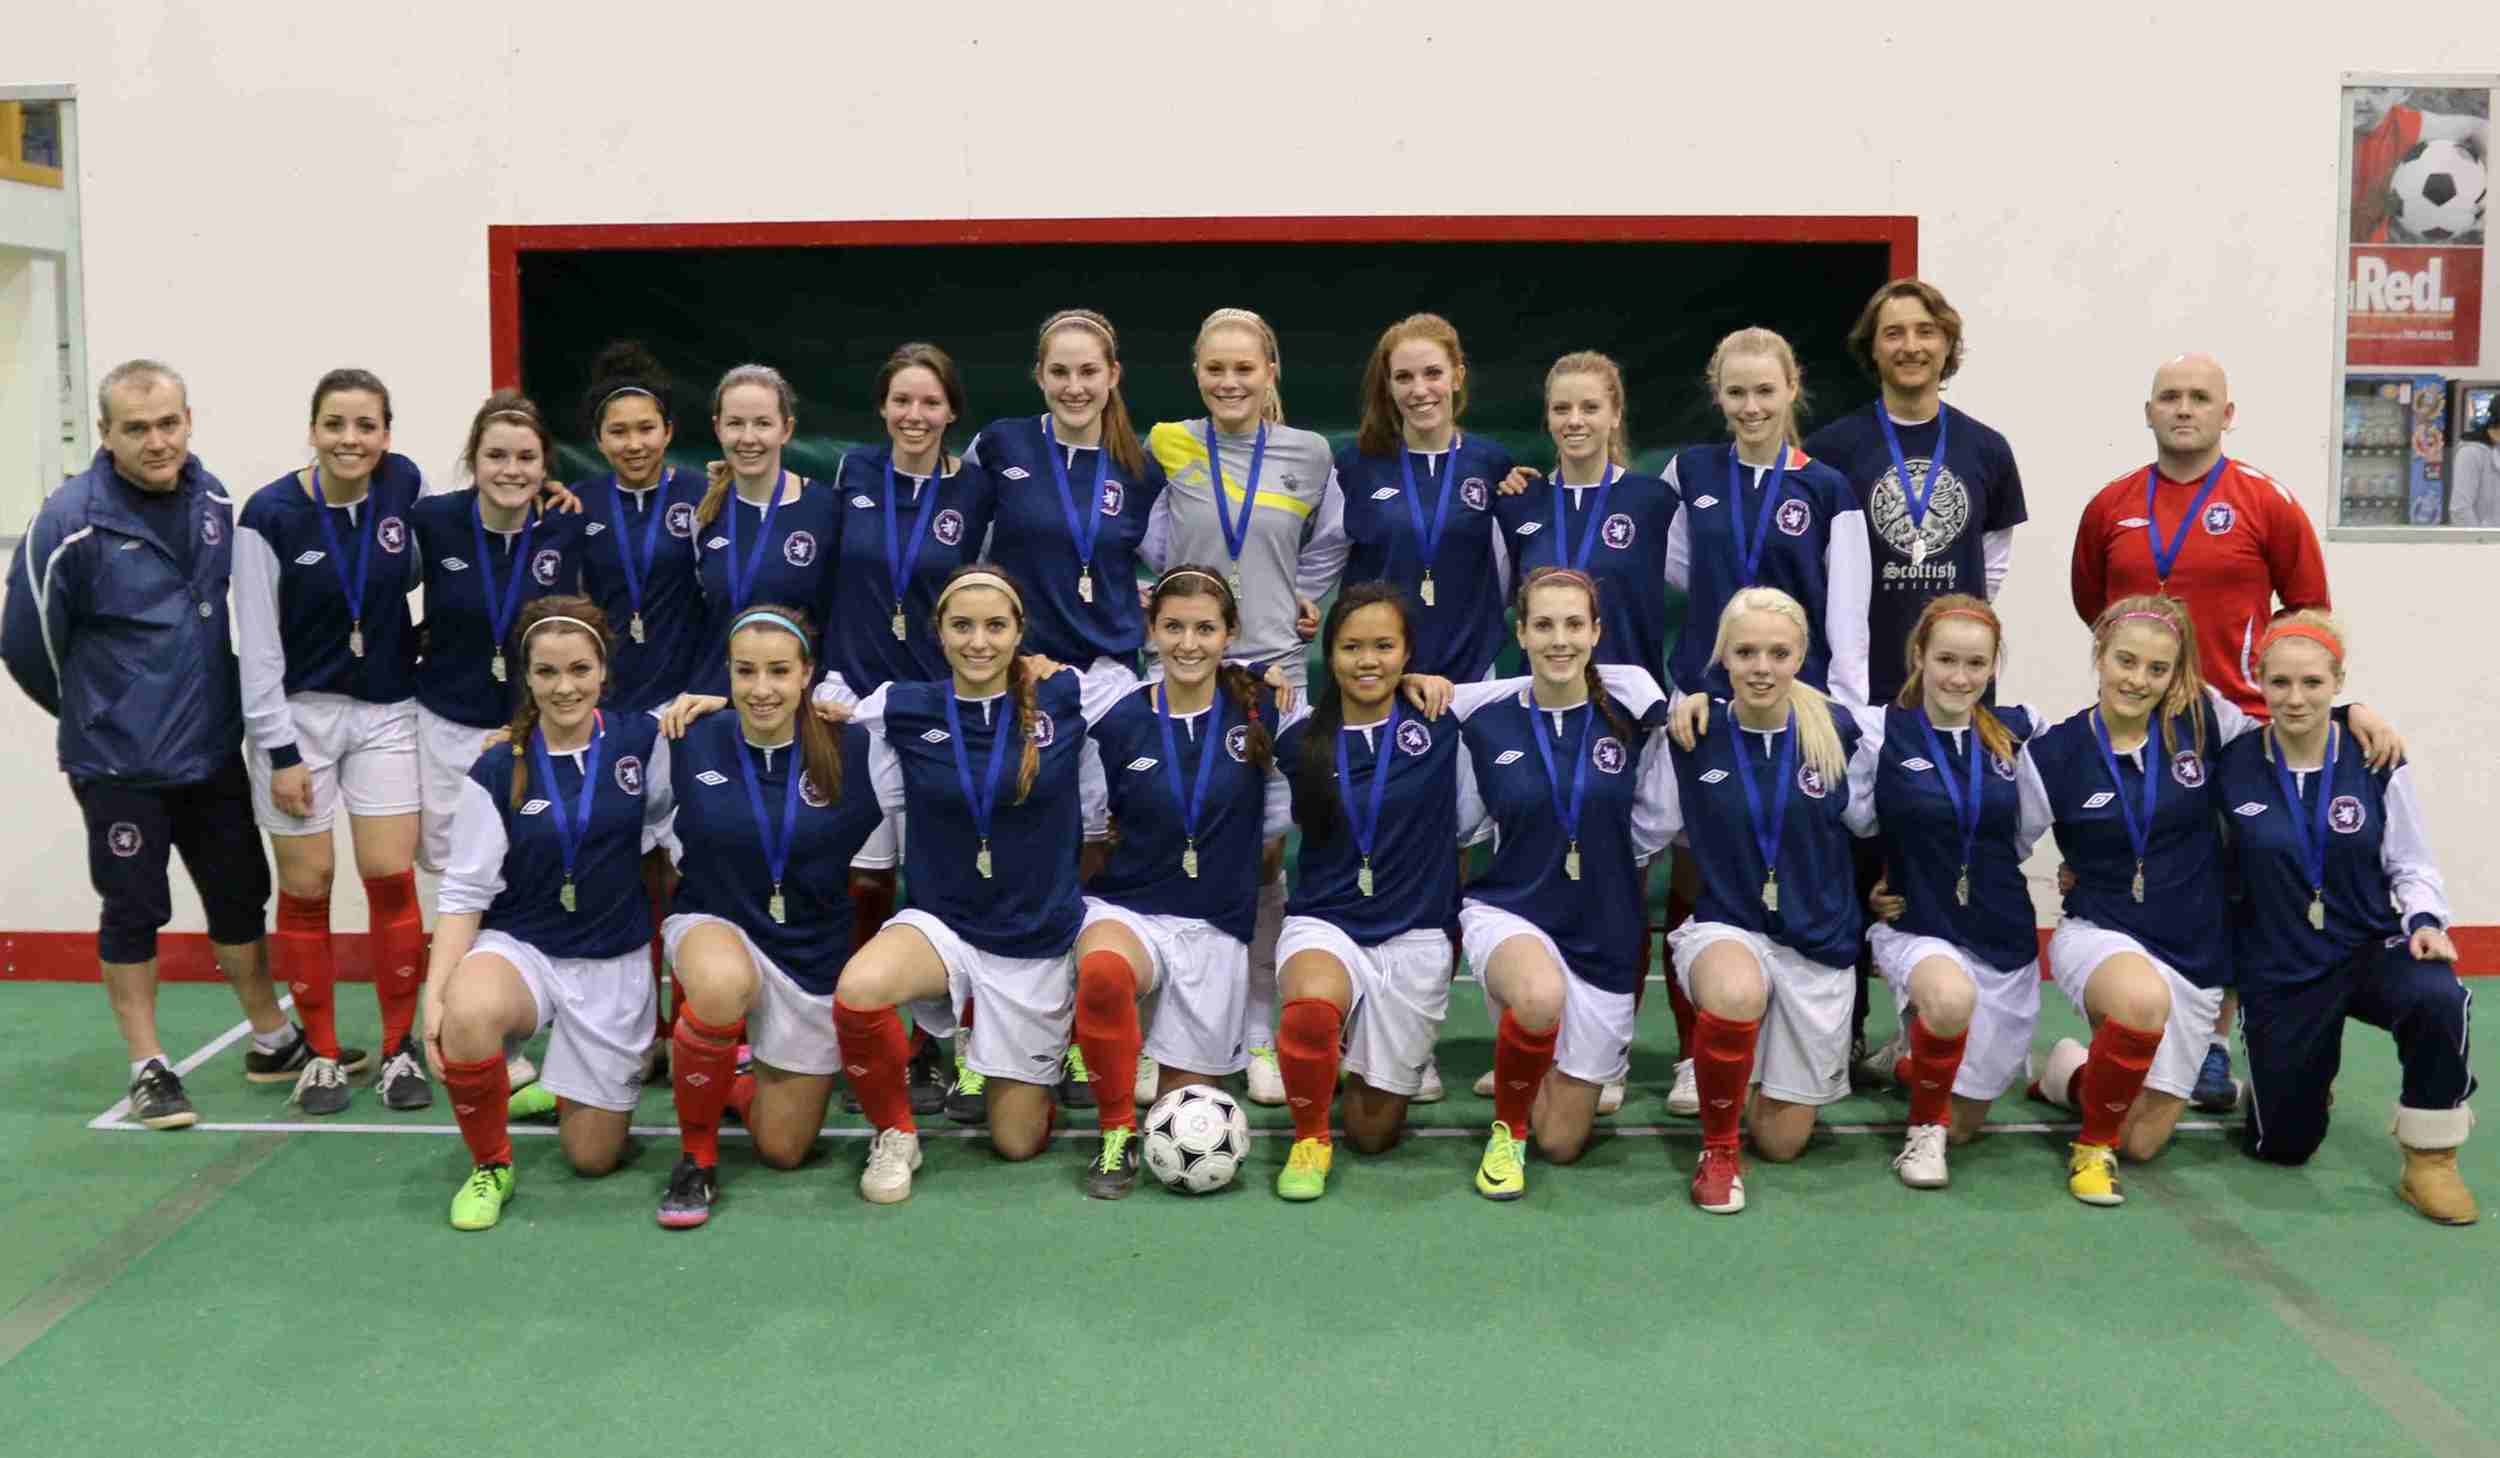 Scottish United Soccer Club - 1996 Girls - Indoor 2013-14 Provincial Silver Medalists